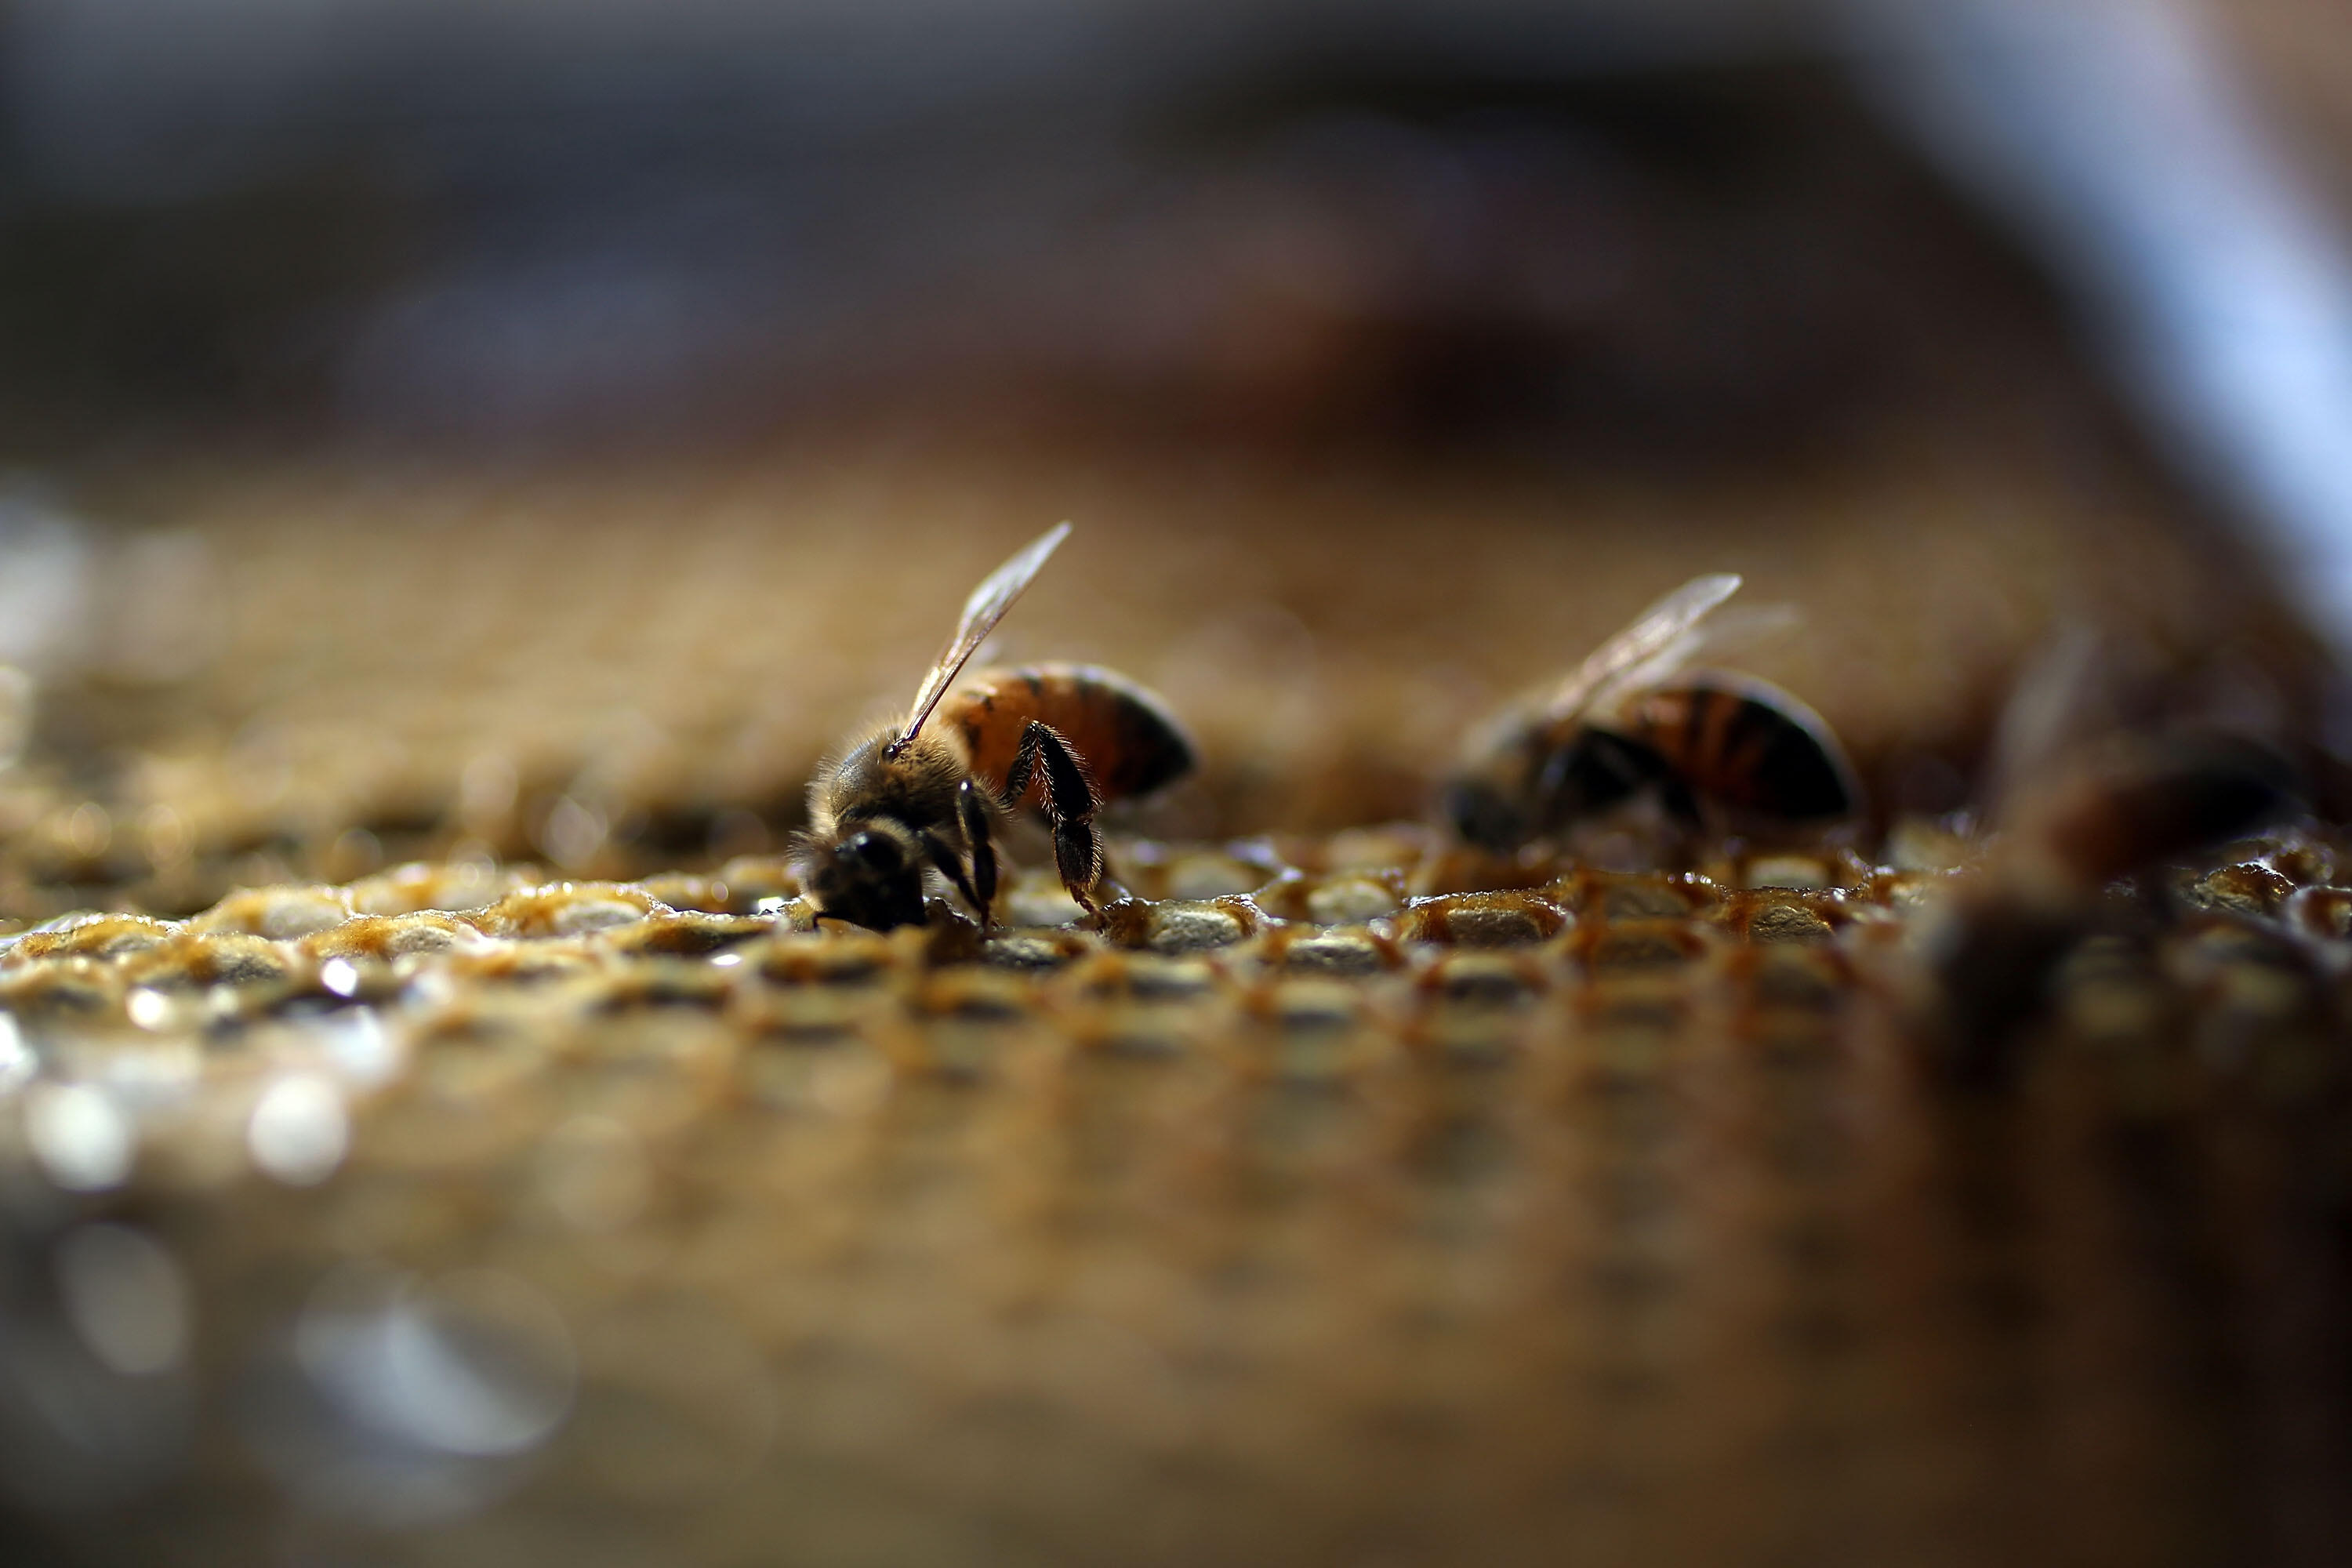 Iowa Lawmakers Considering Bill To Make Honeybee State Insect | WHO Radio News | 1040 WHO